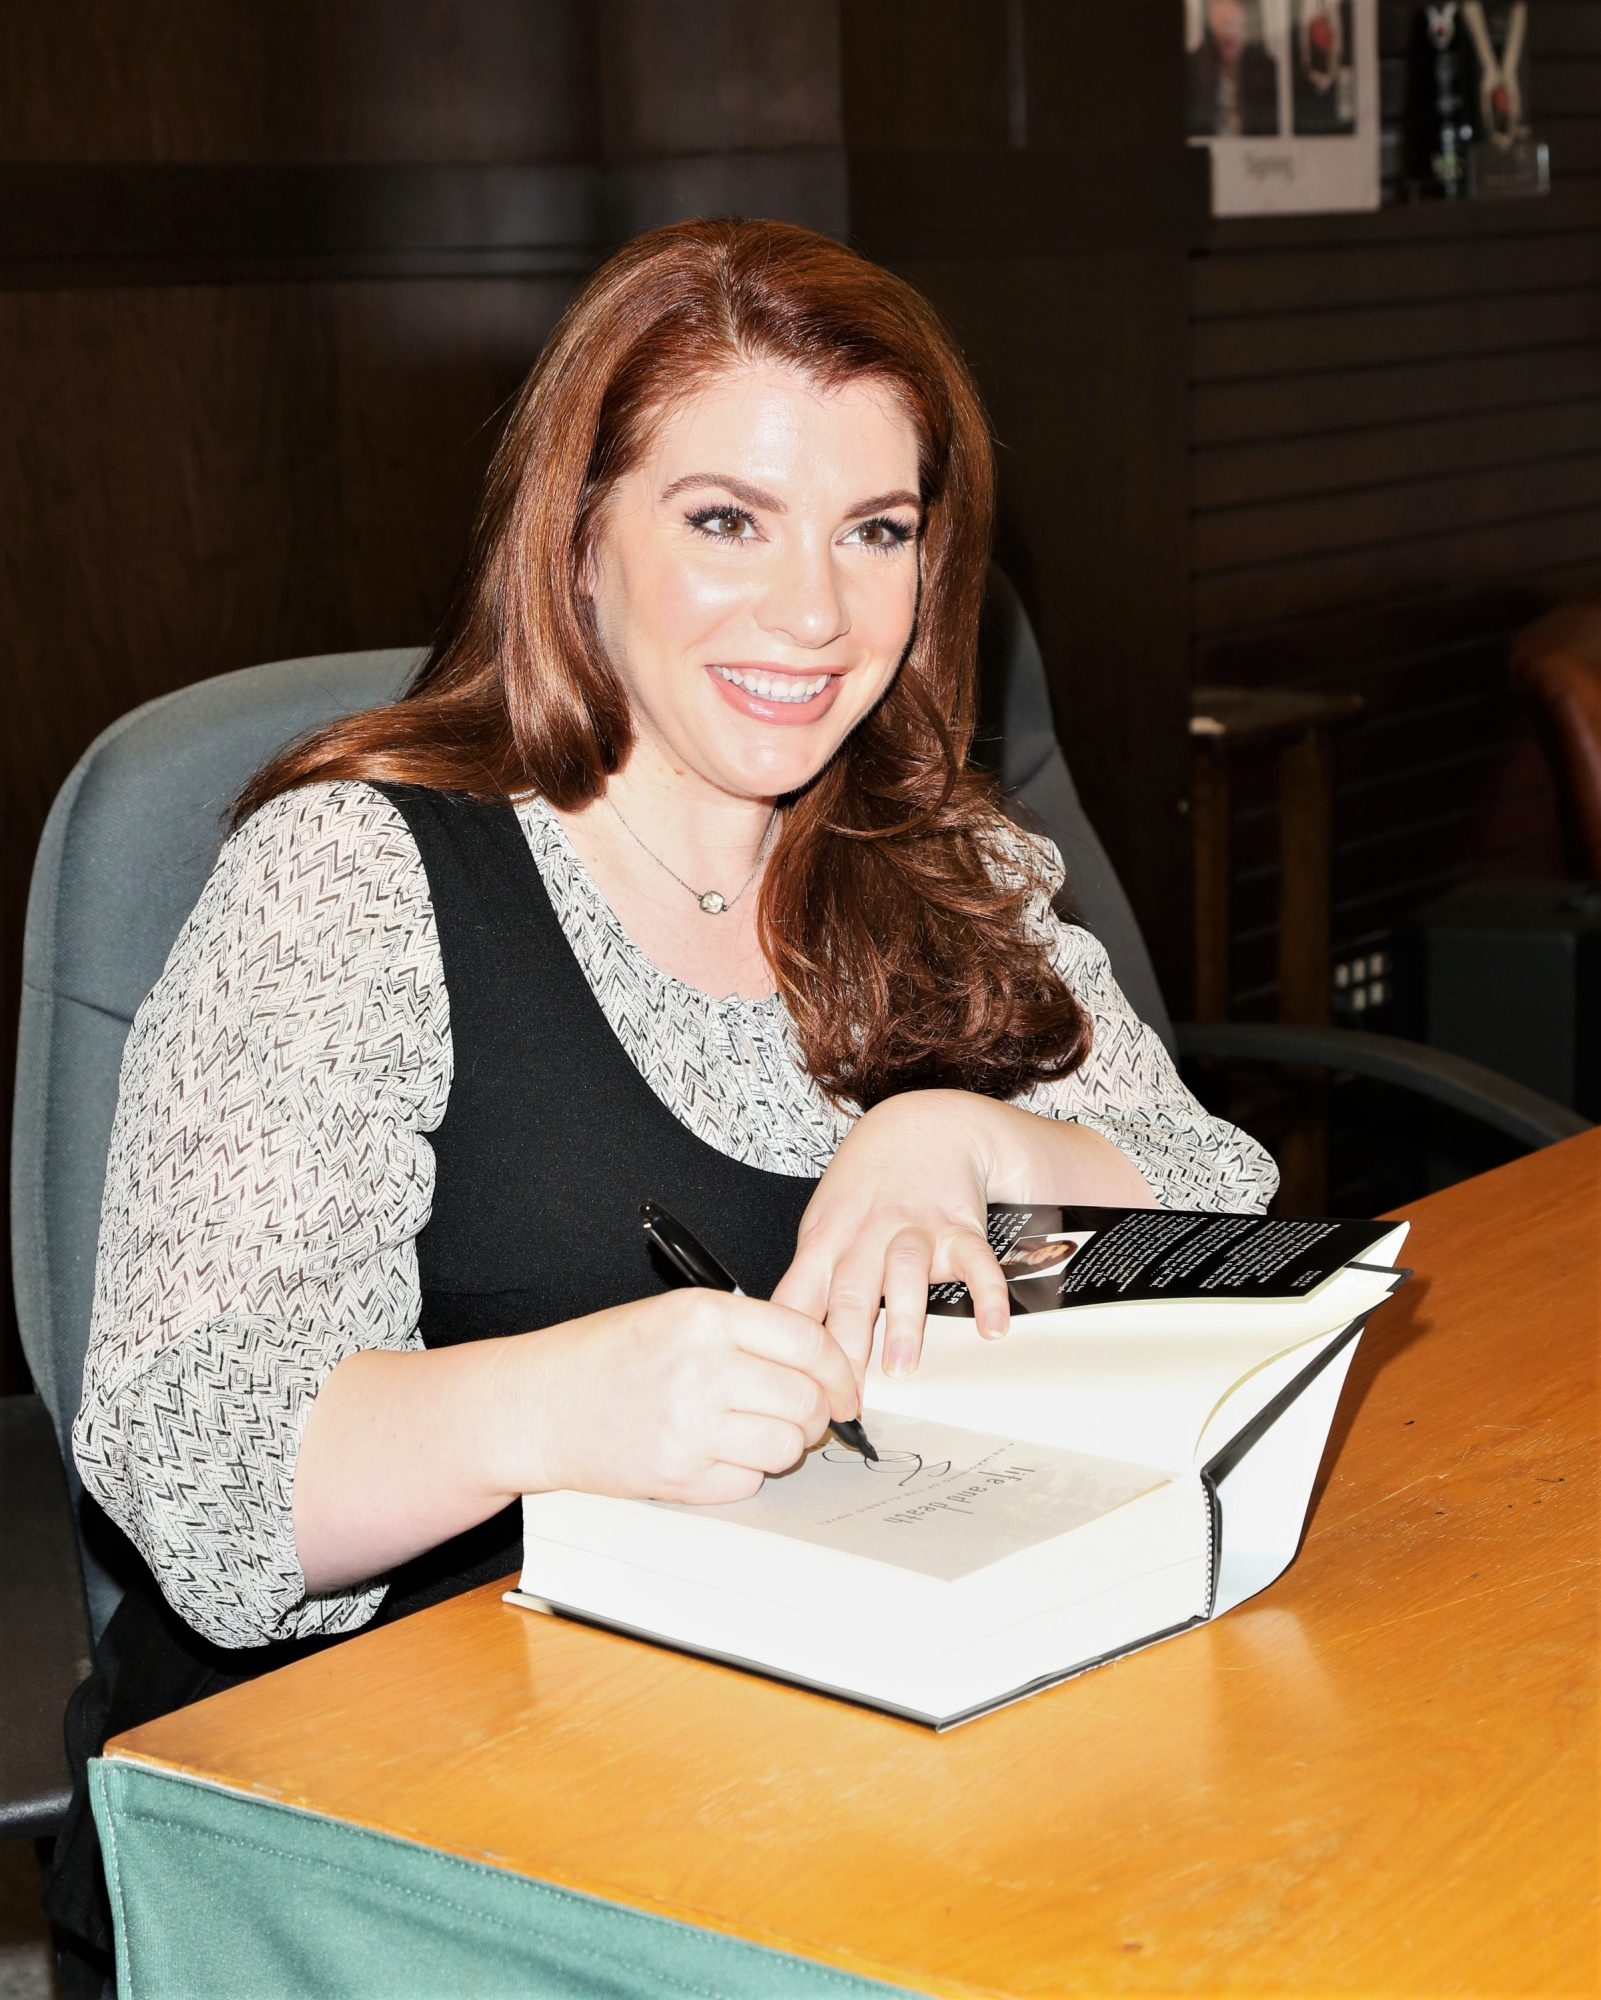 Author Stephenie Meyer Signing Twilight Books